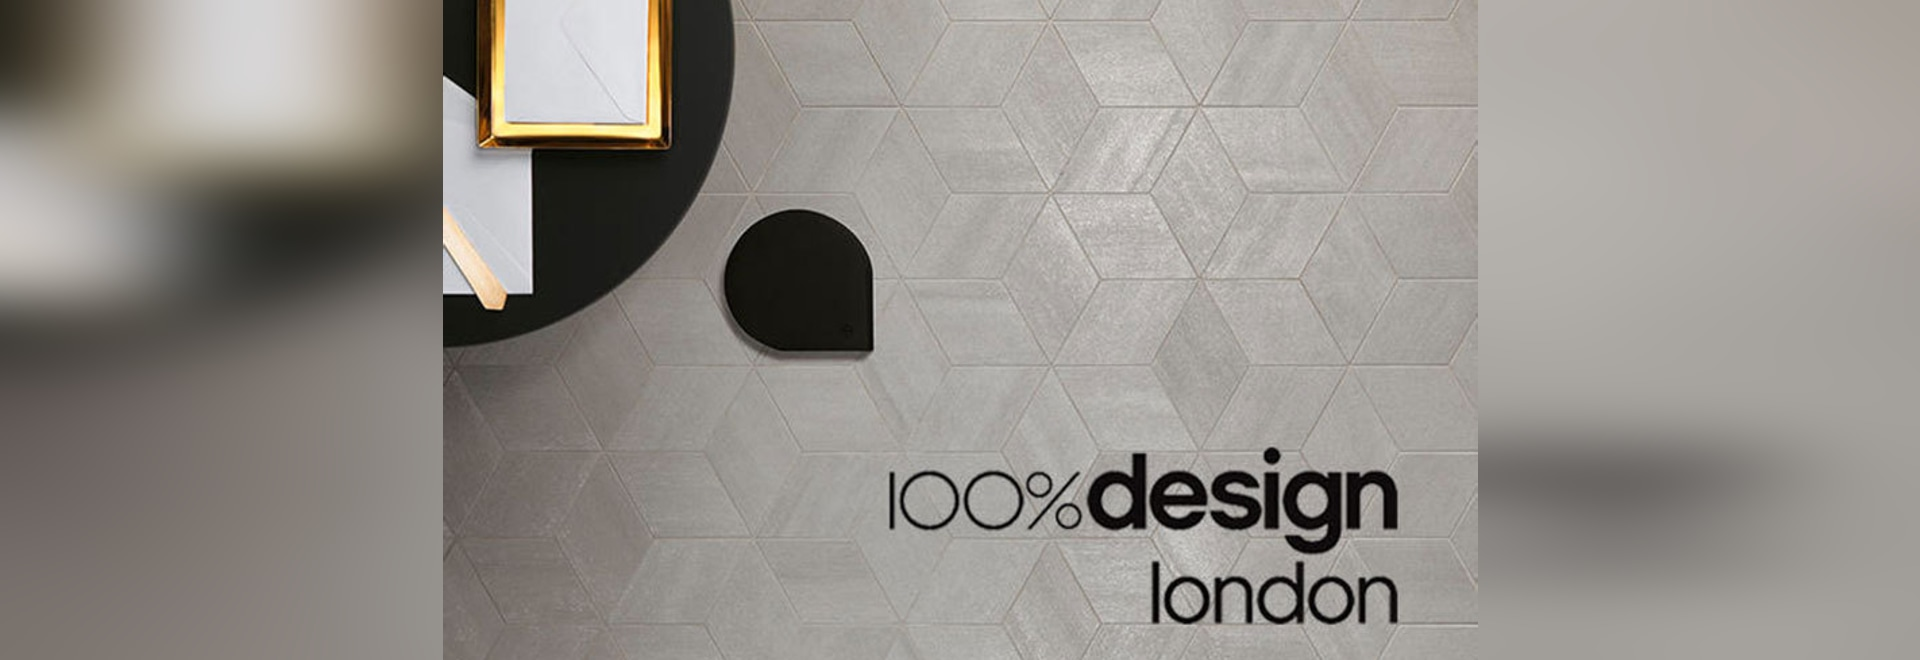 100% Made in Italy by Atlas Concorde at 100% Design in London